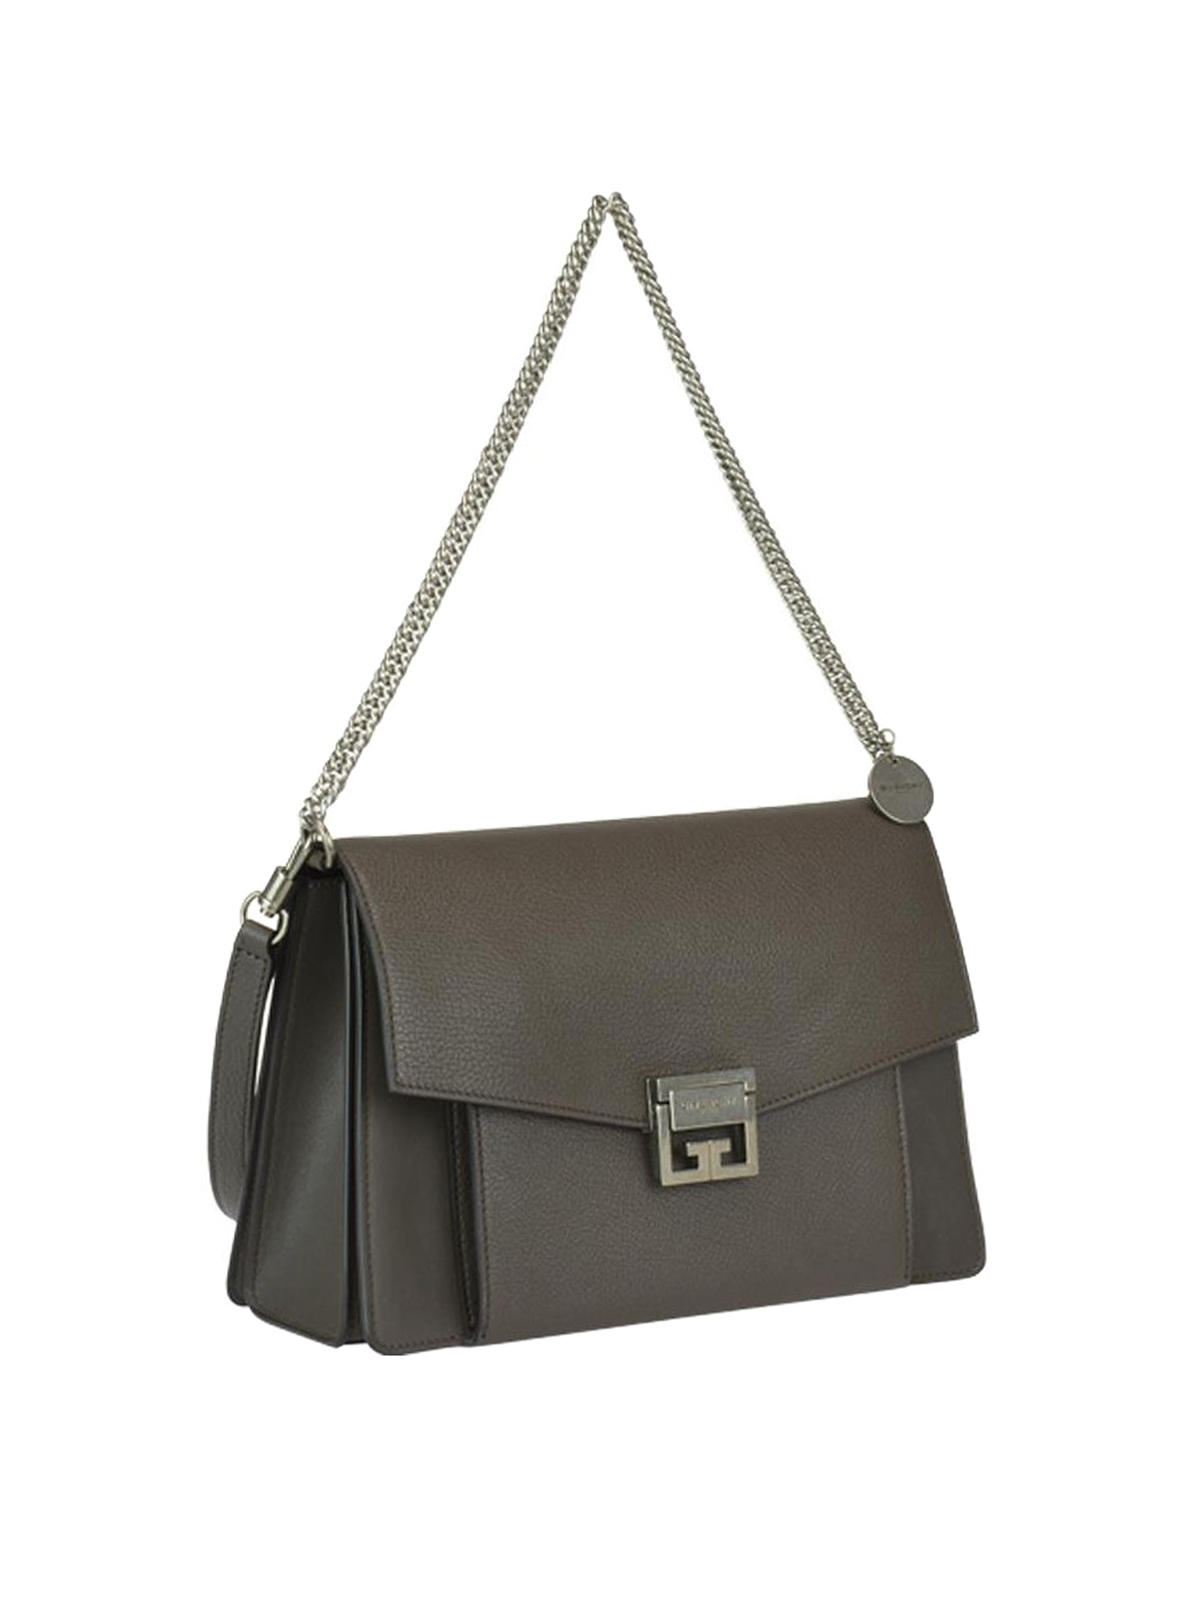 4f034e78dfc GIVENCHY  shoulder bags online - GV3 heather grey leather small shoulder bag